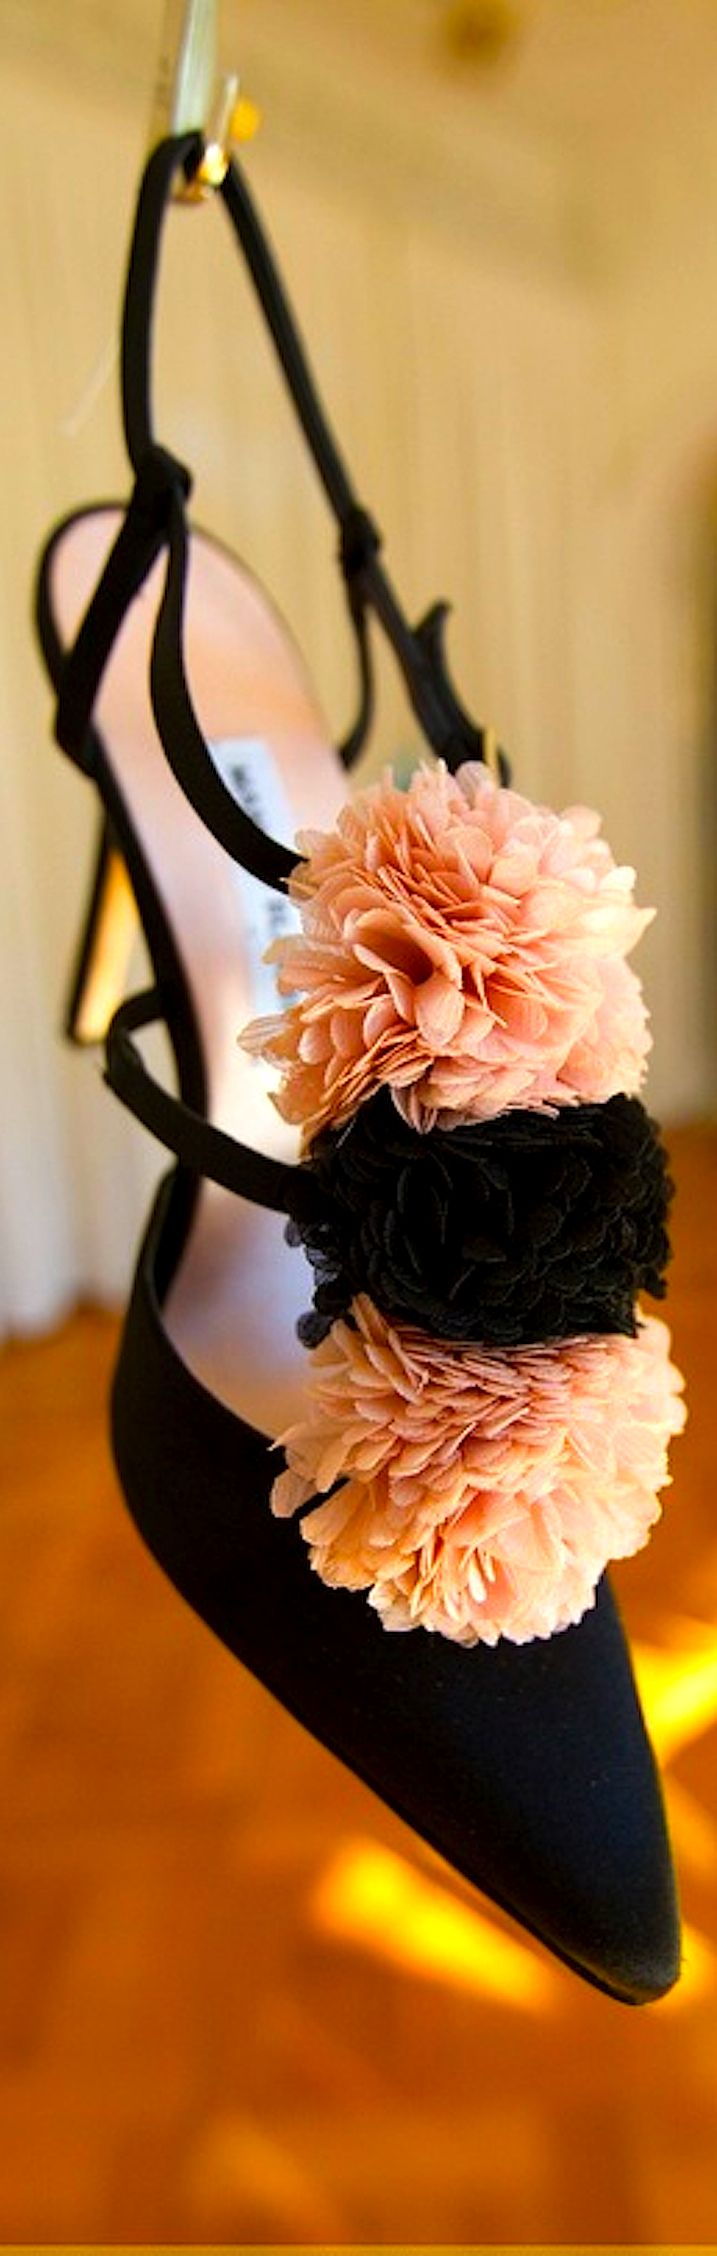 Manolo Blahnik black slingback pumps with peach and black flowers #shoes #fashion #accessories